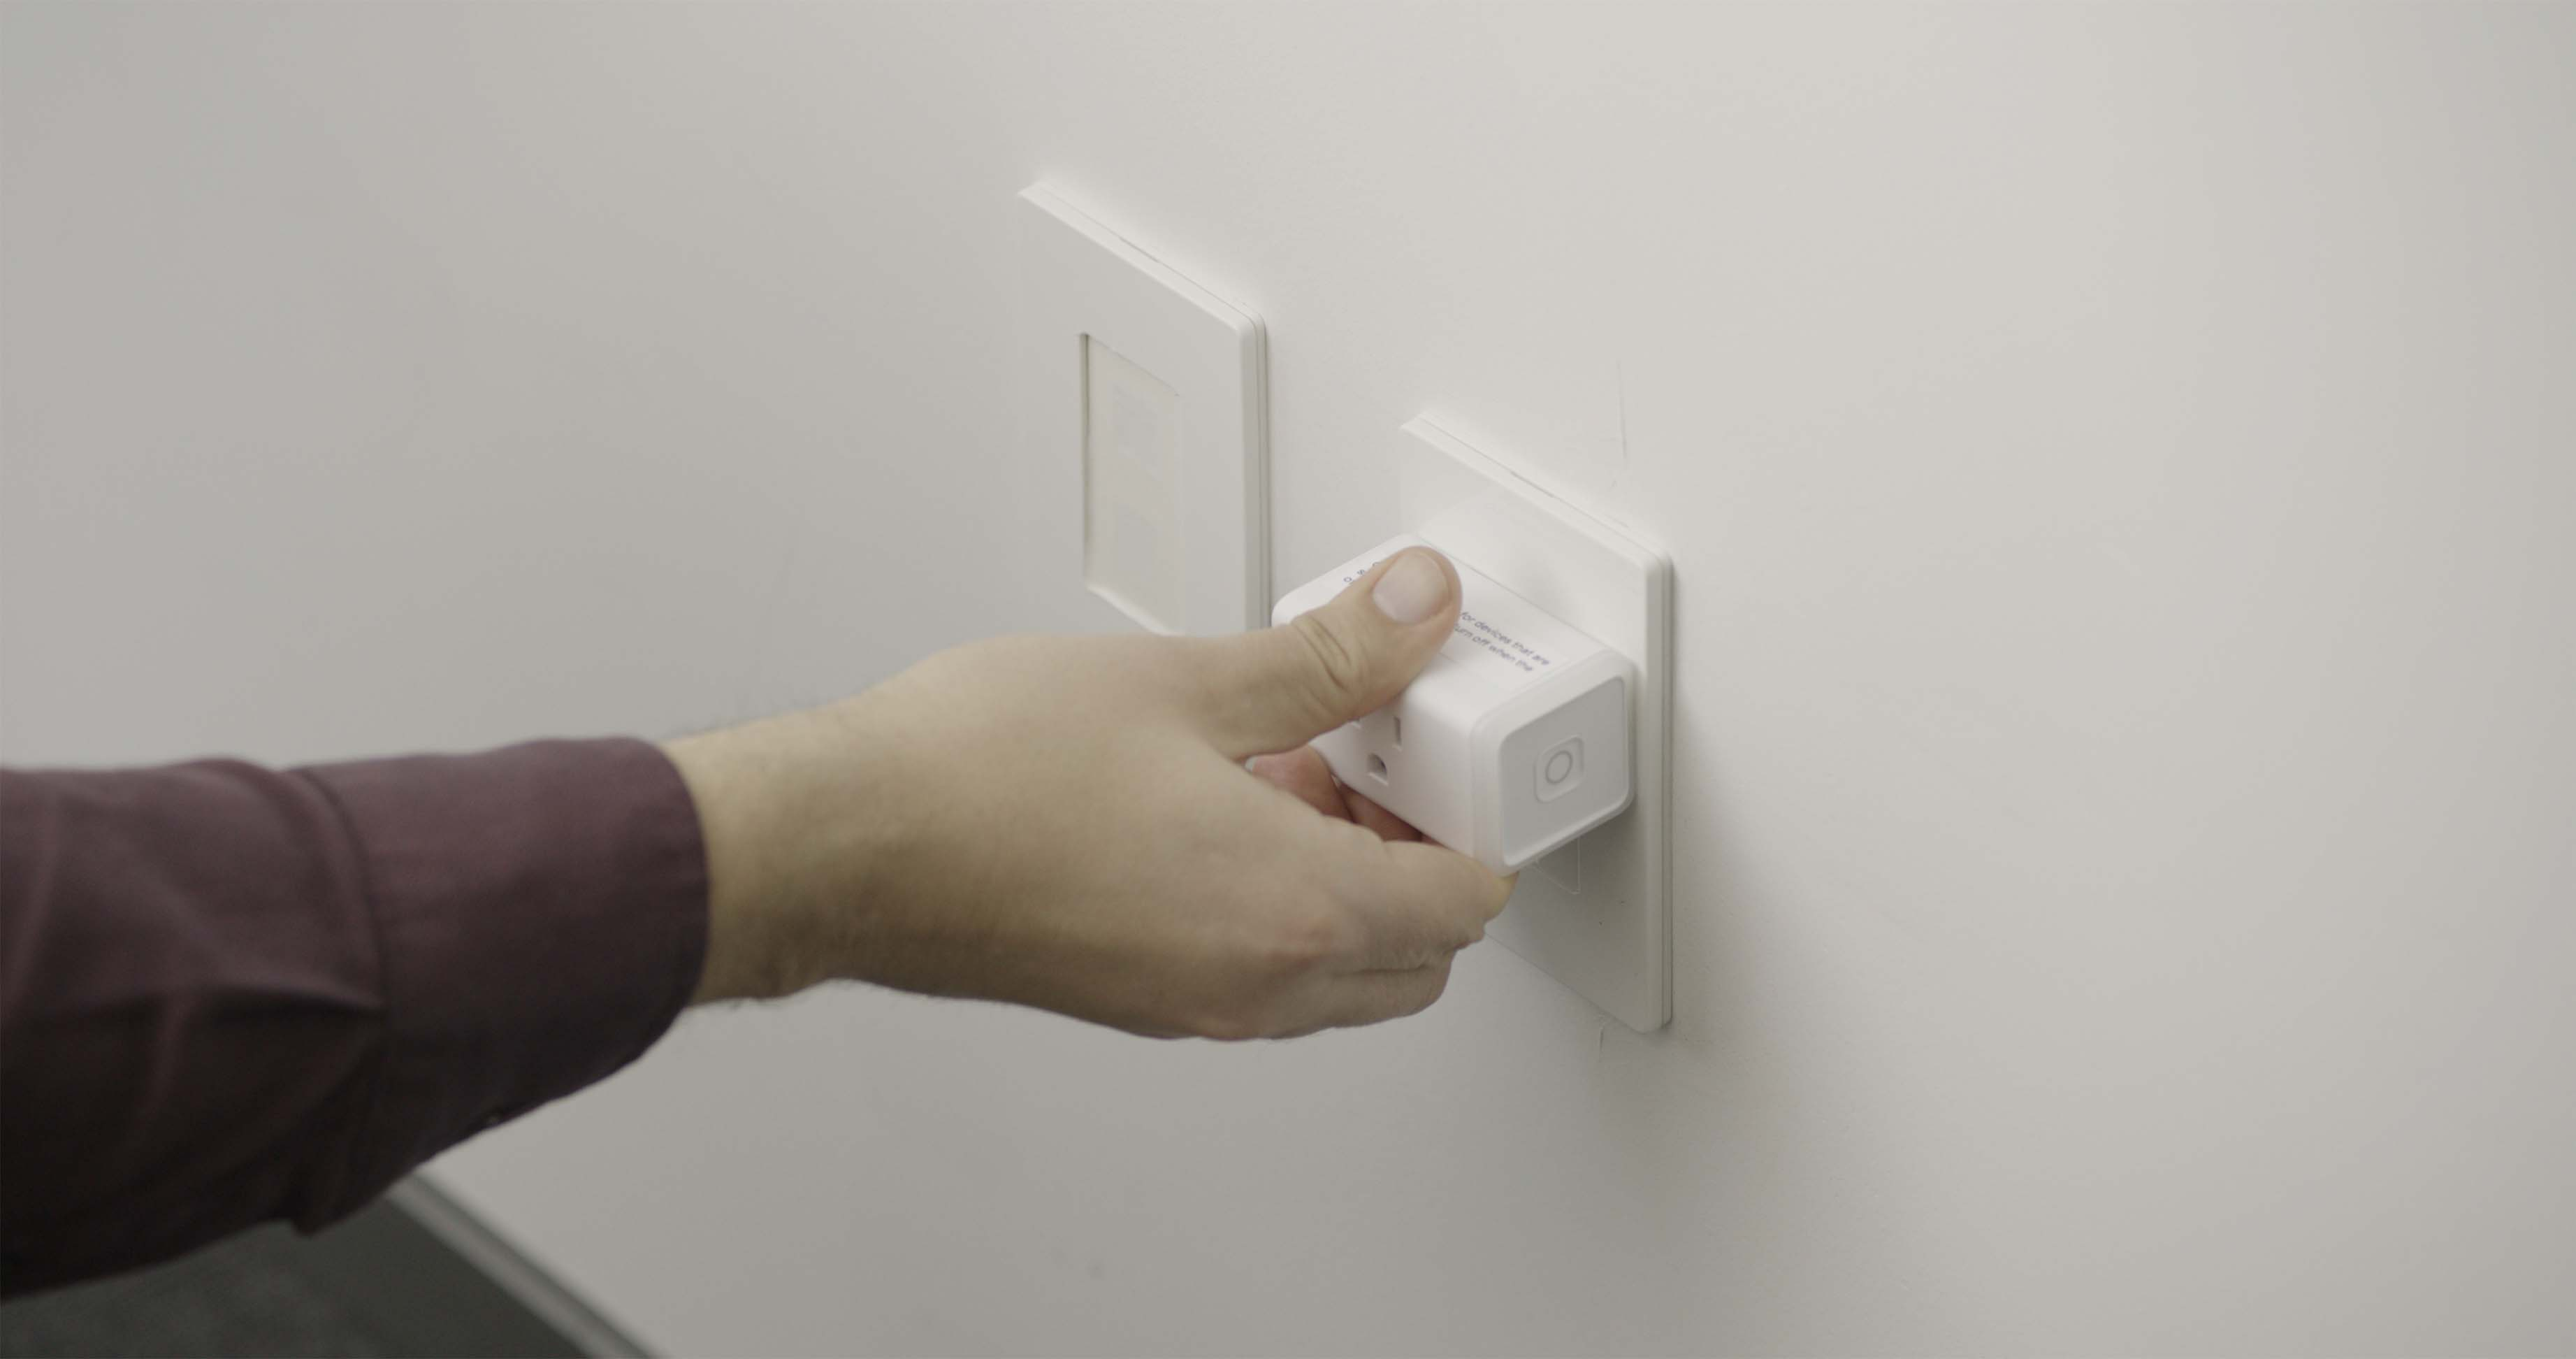 Photograph of a person plugging a smart plug into a wall outlet